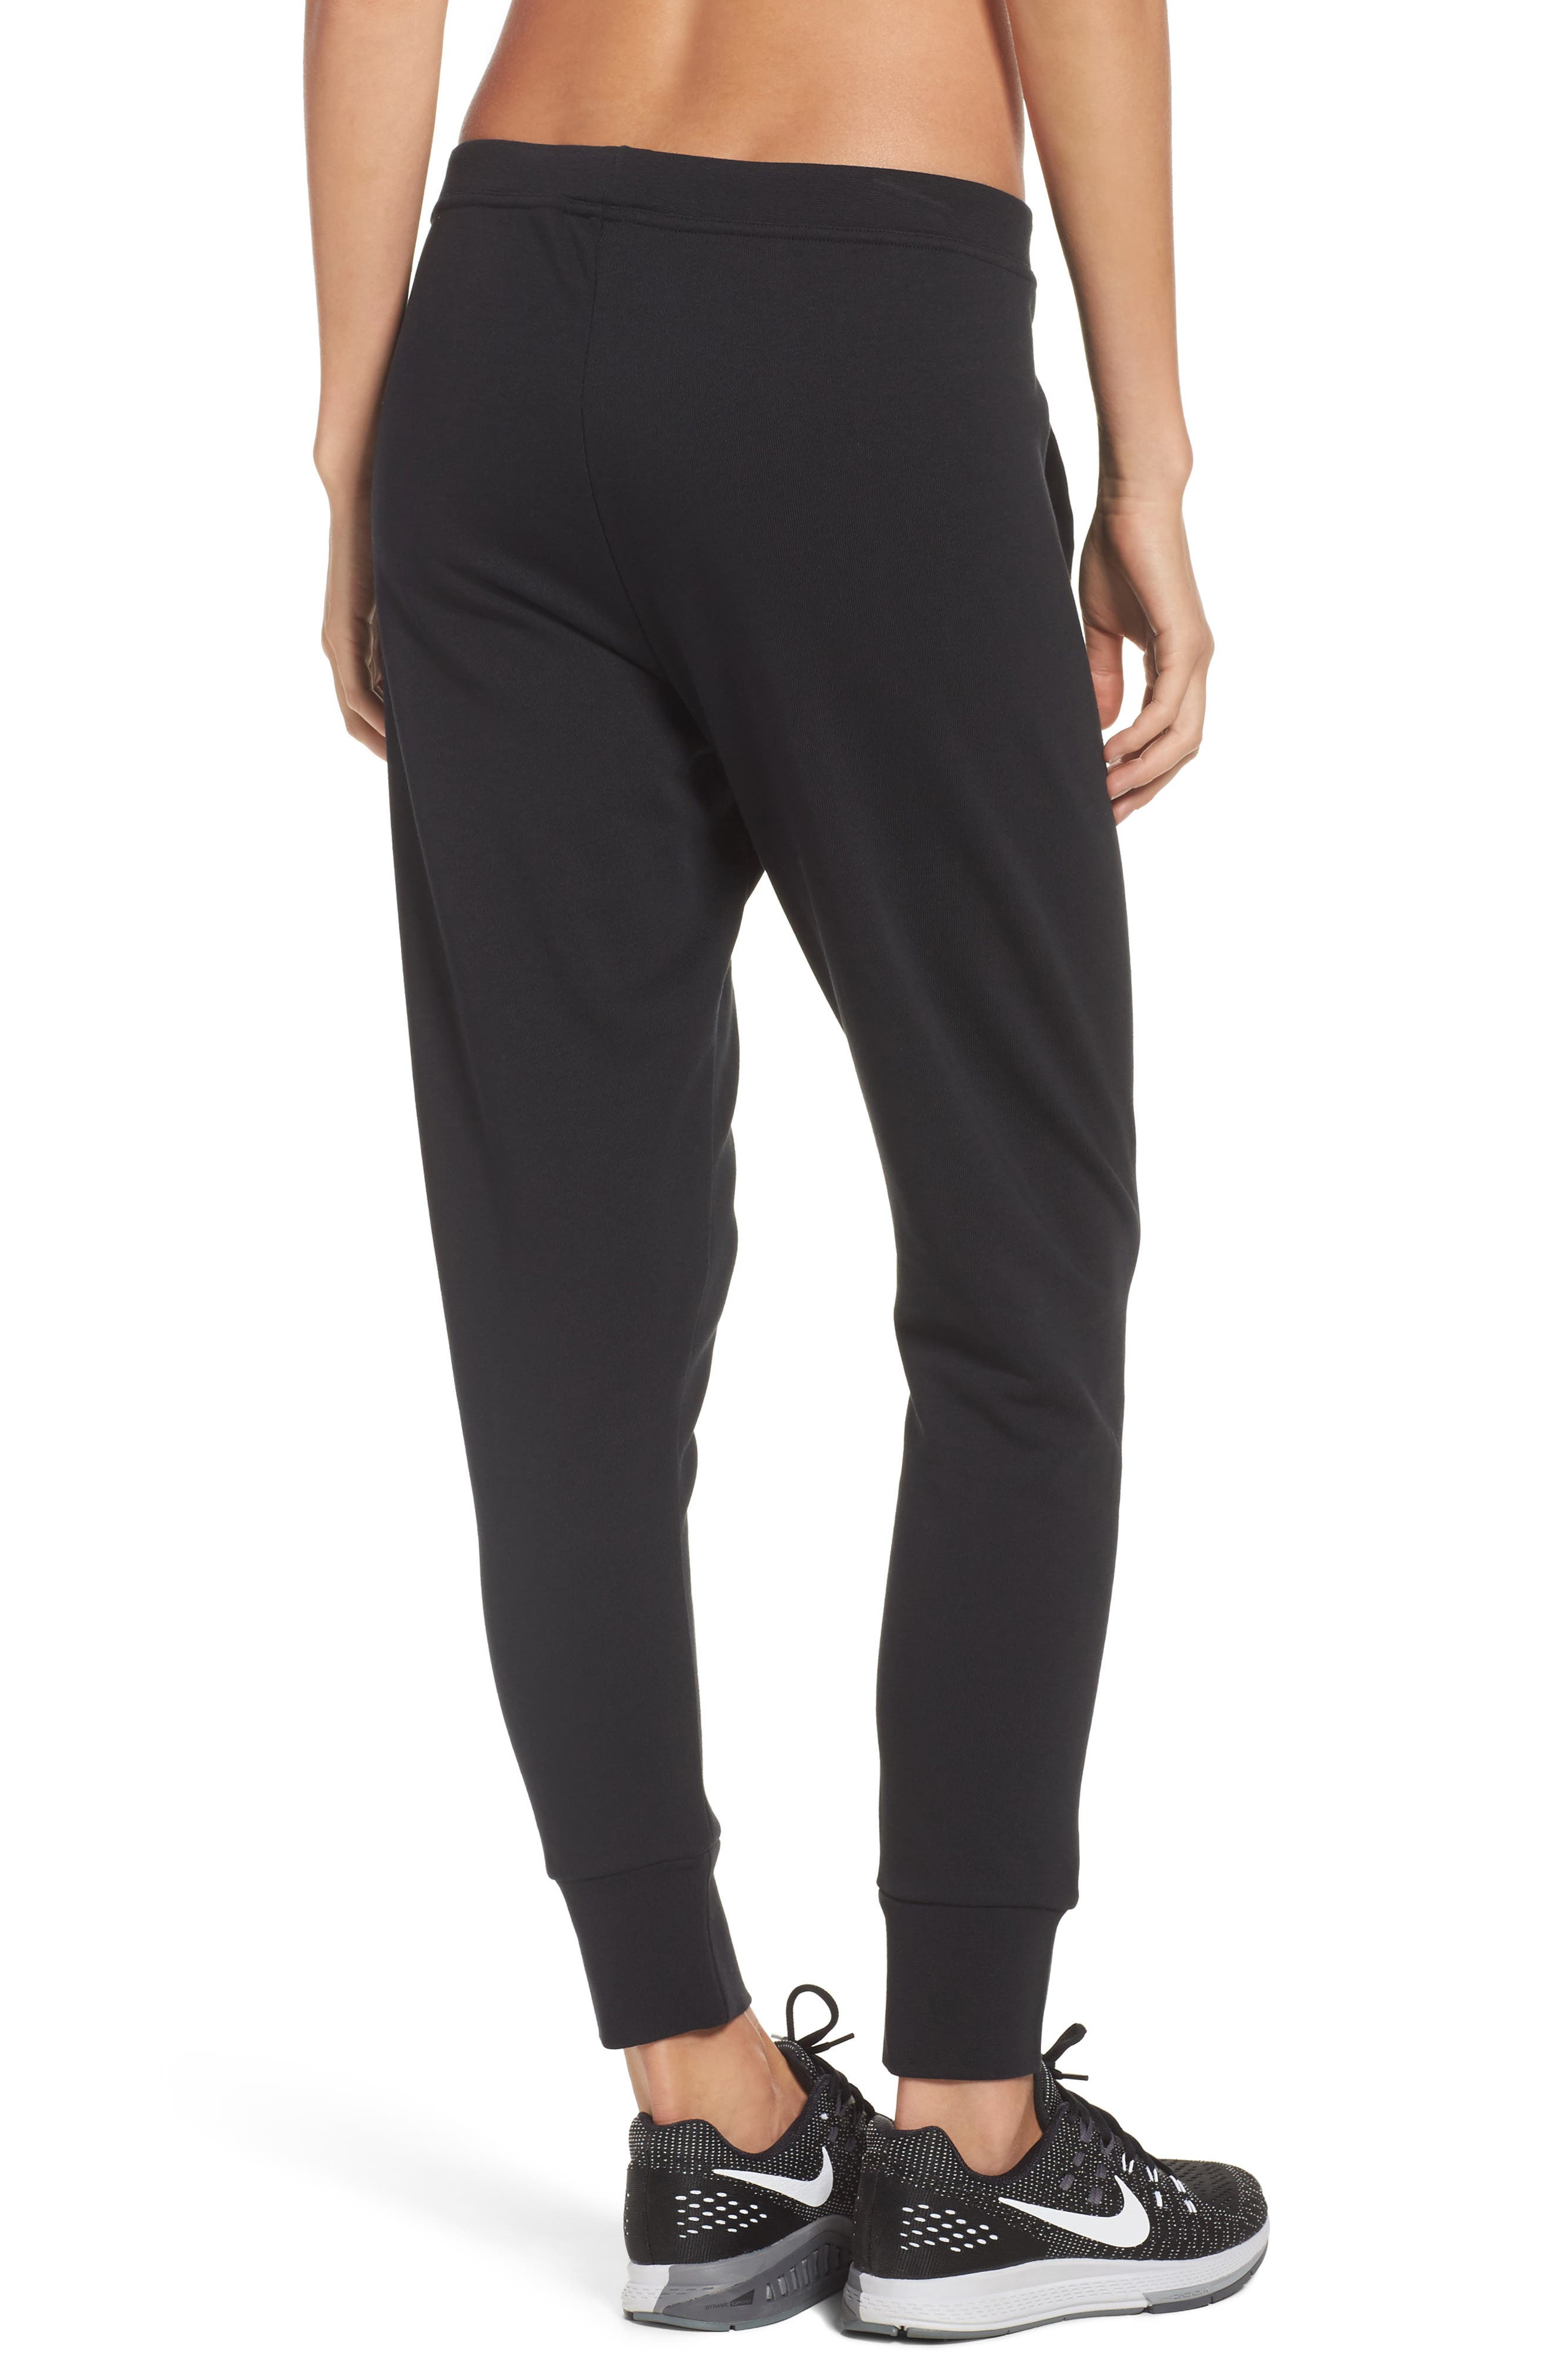 Versa Track Pants,                             Alternate thumbnail 2, color,                             010